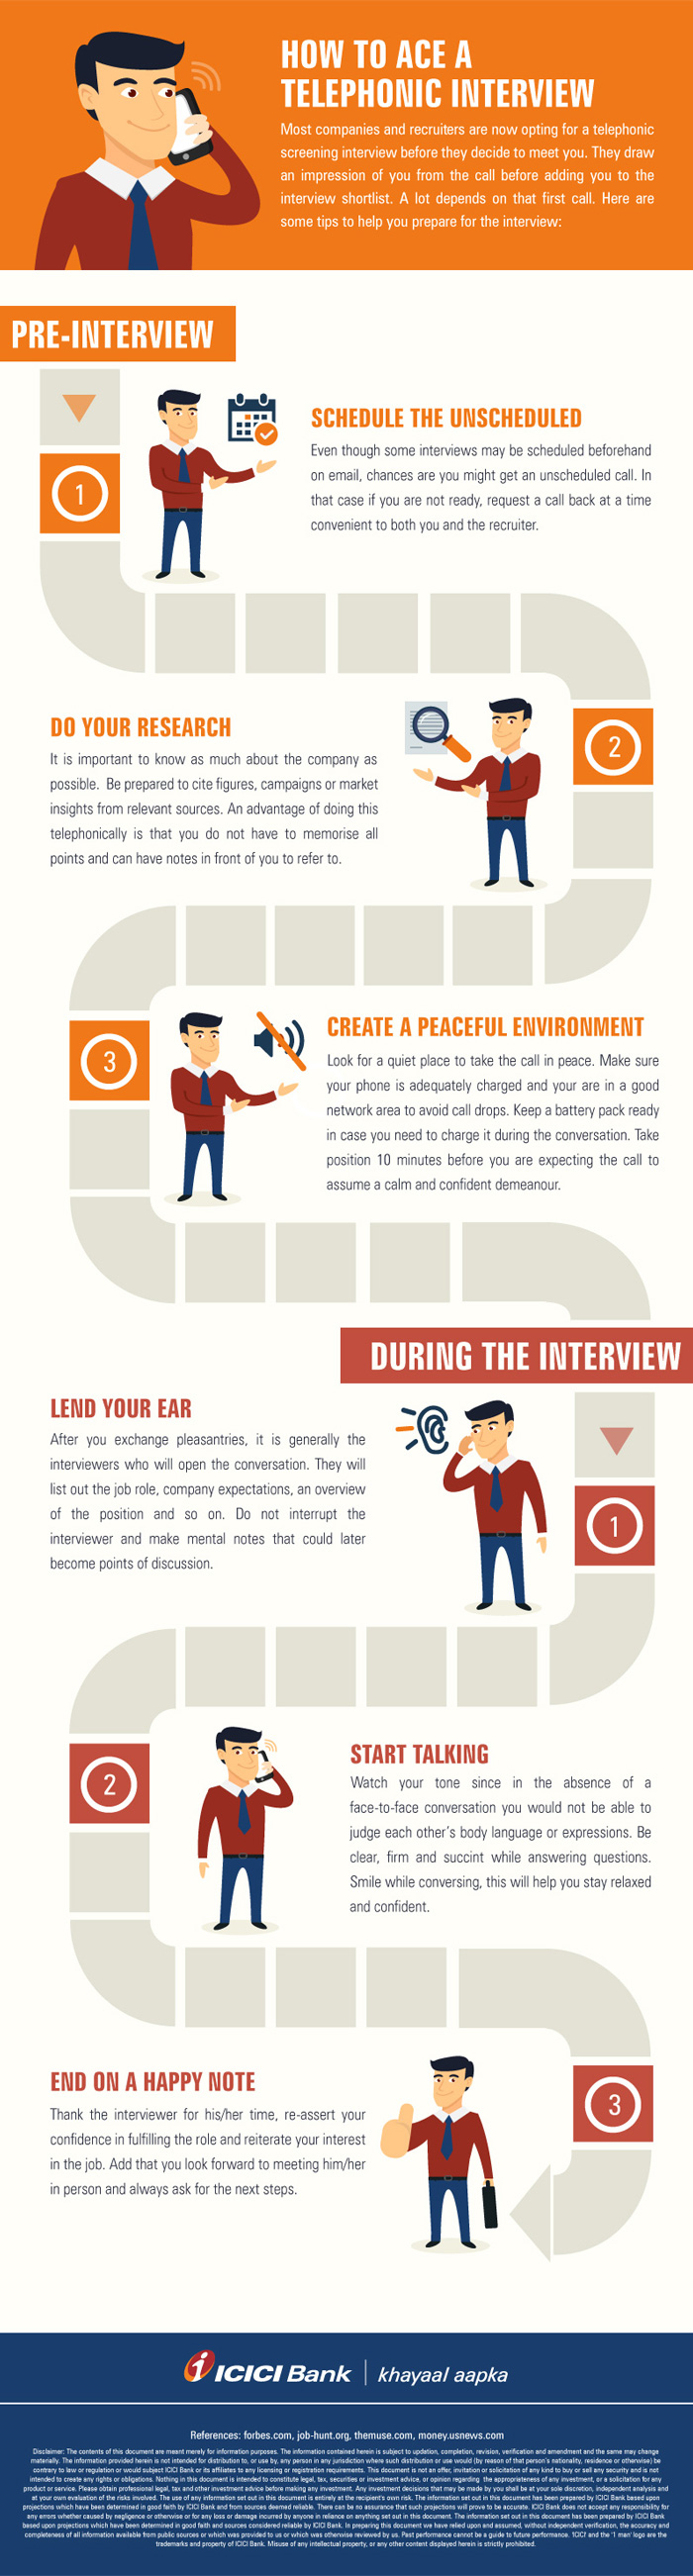 how to ace a telephonic interview